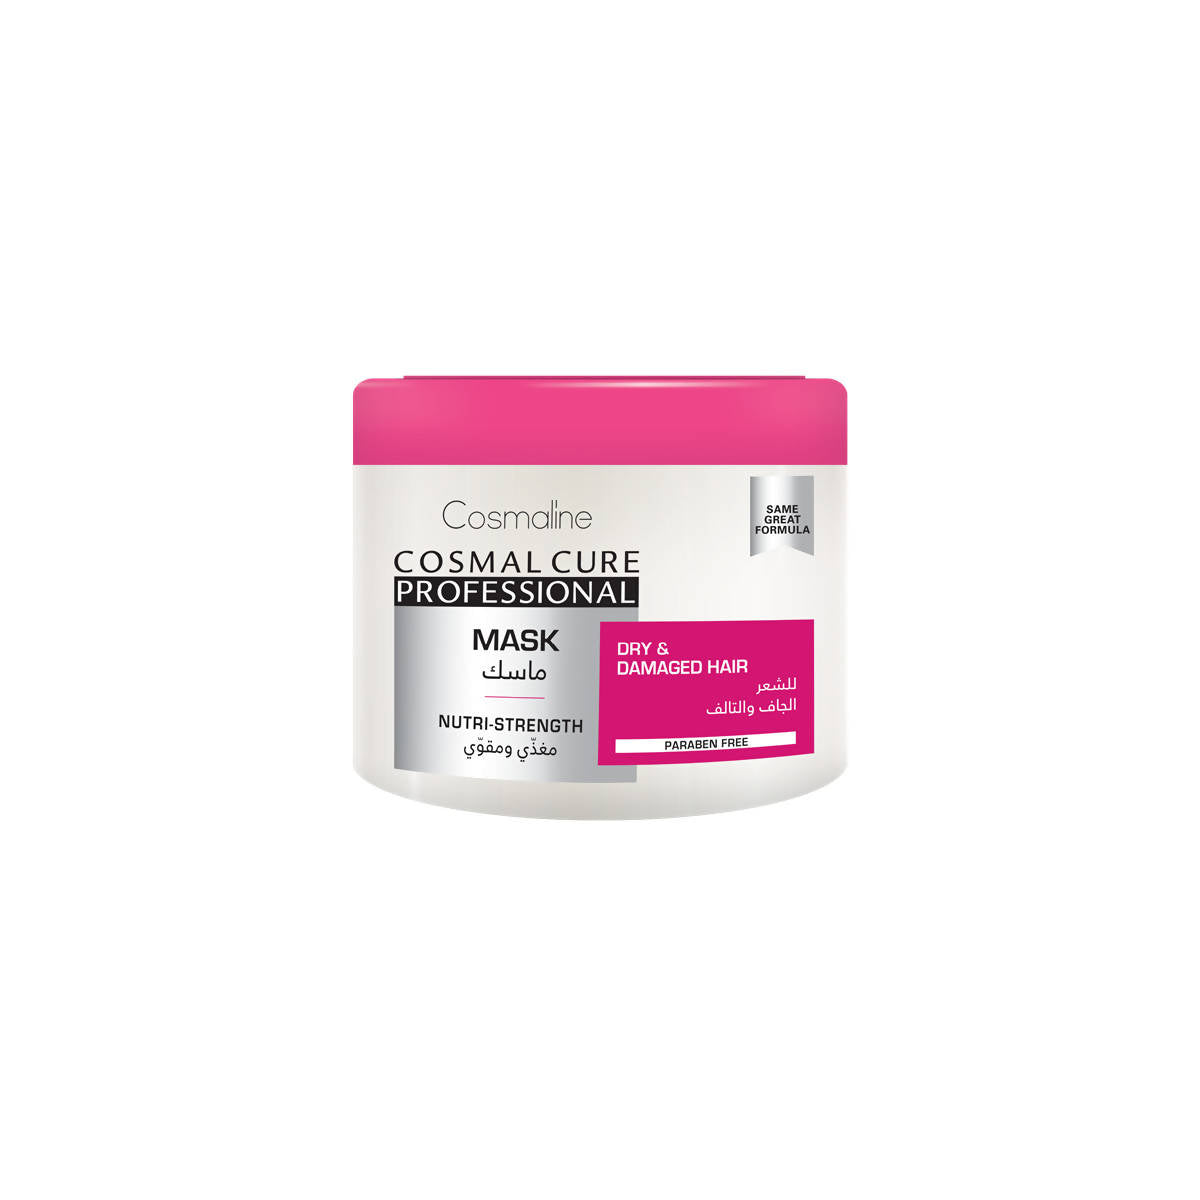 COSMAL CURE PROFESSIONAL MASK - NUTRI-STRENGTH - 450ML